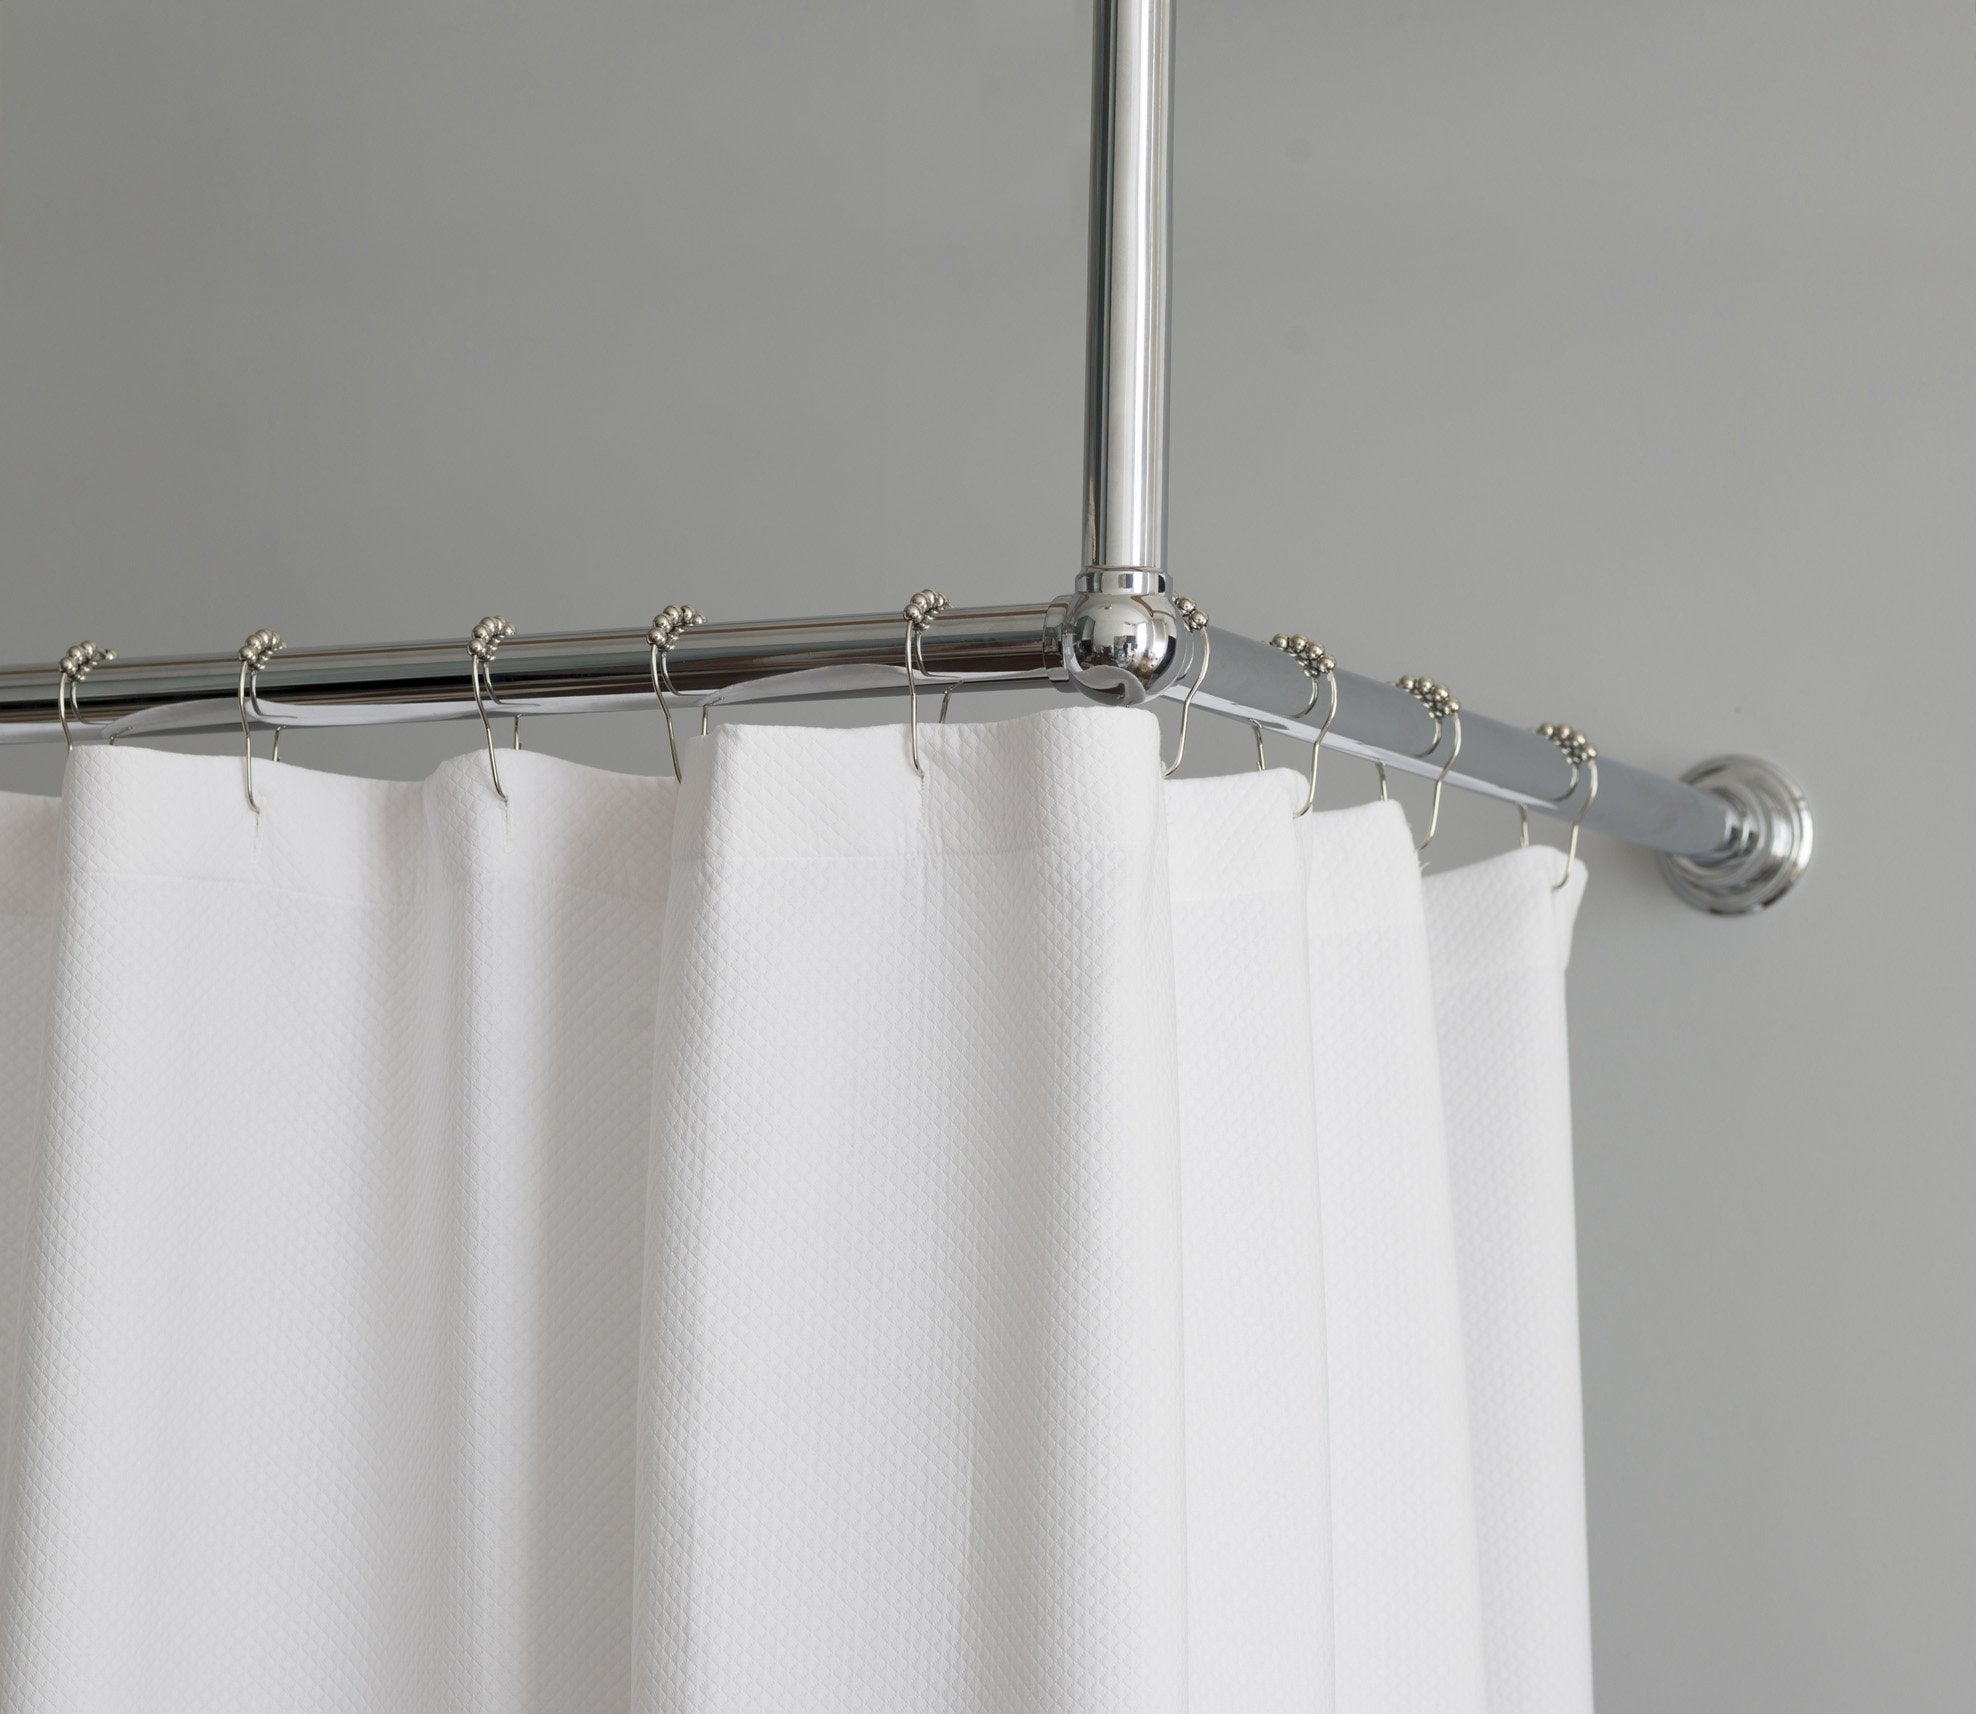 Shower Curtain Rail L-Shape Rail Product Image 1